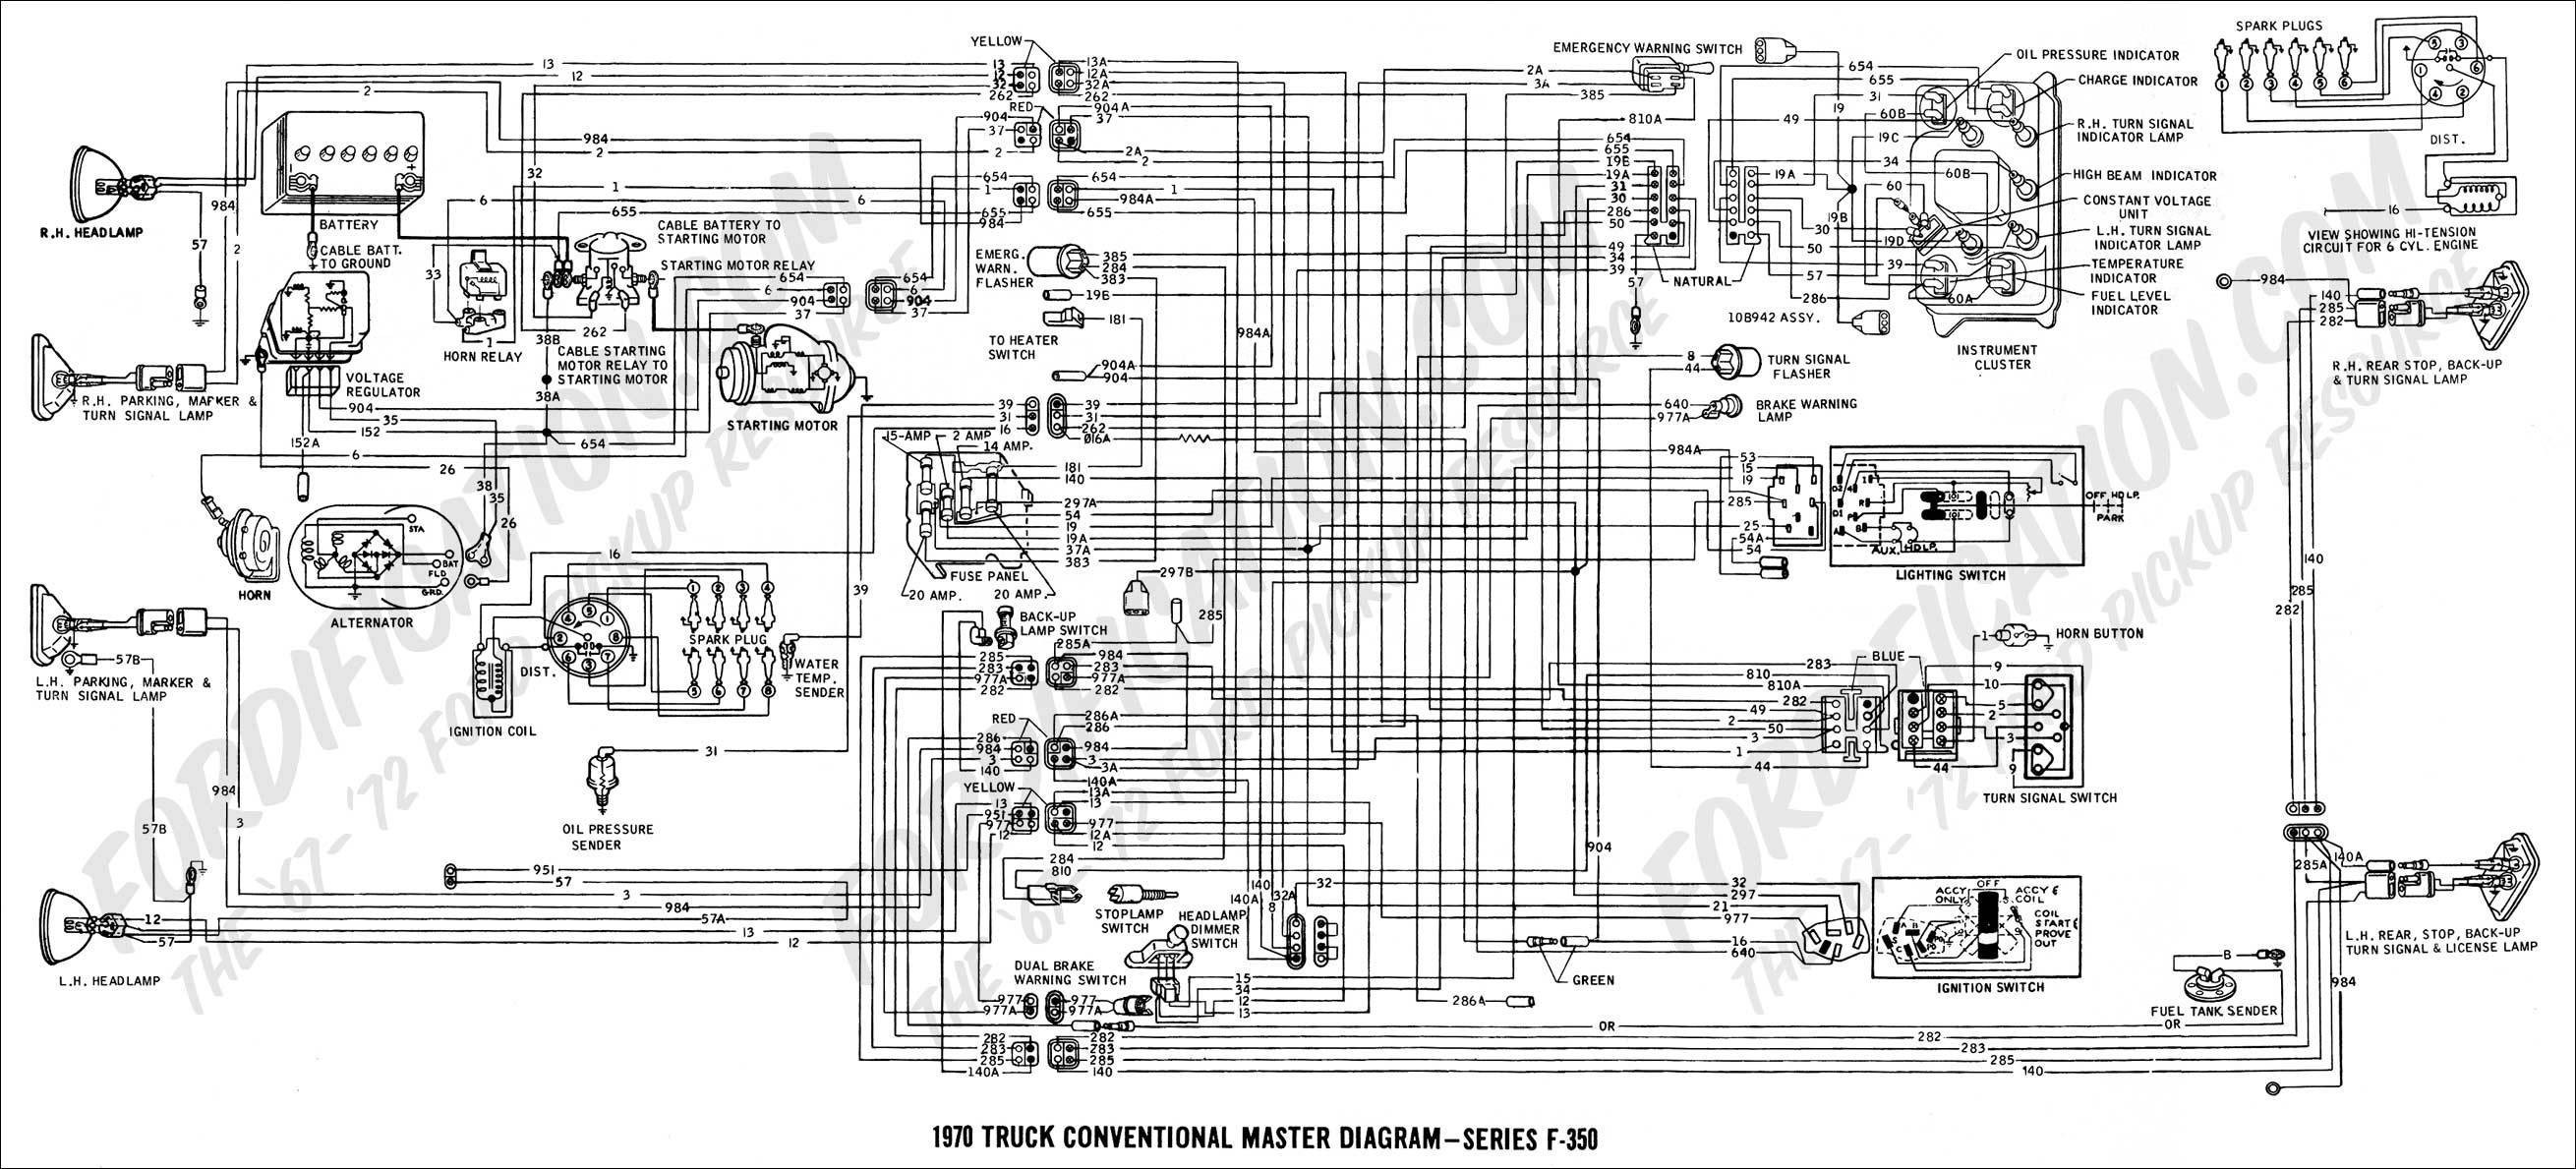 1986 ford mustang fuse box electrical work wiring diagram u2022 rh wiringdiagramshop today 1986 ford mustang gt fuse box location 1986 ford mustang gt fuse box diagram